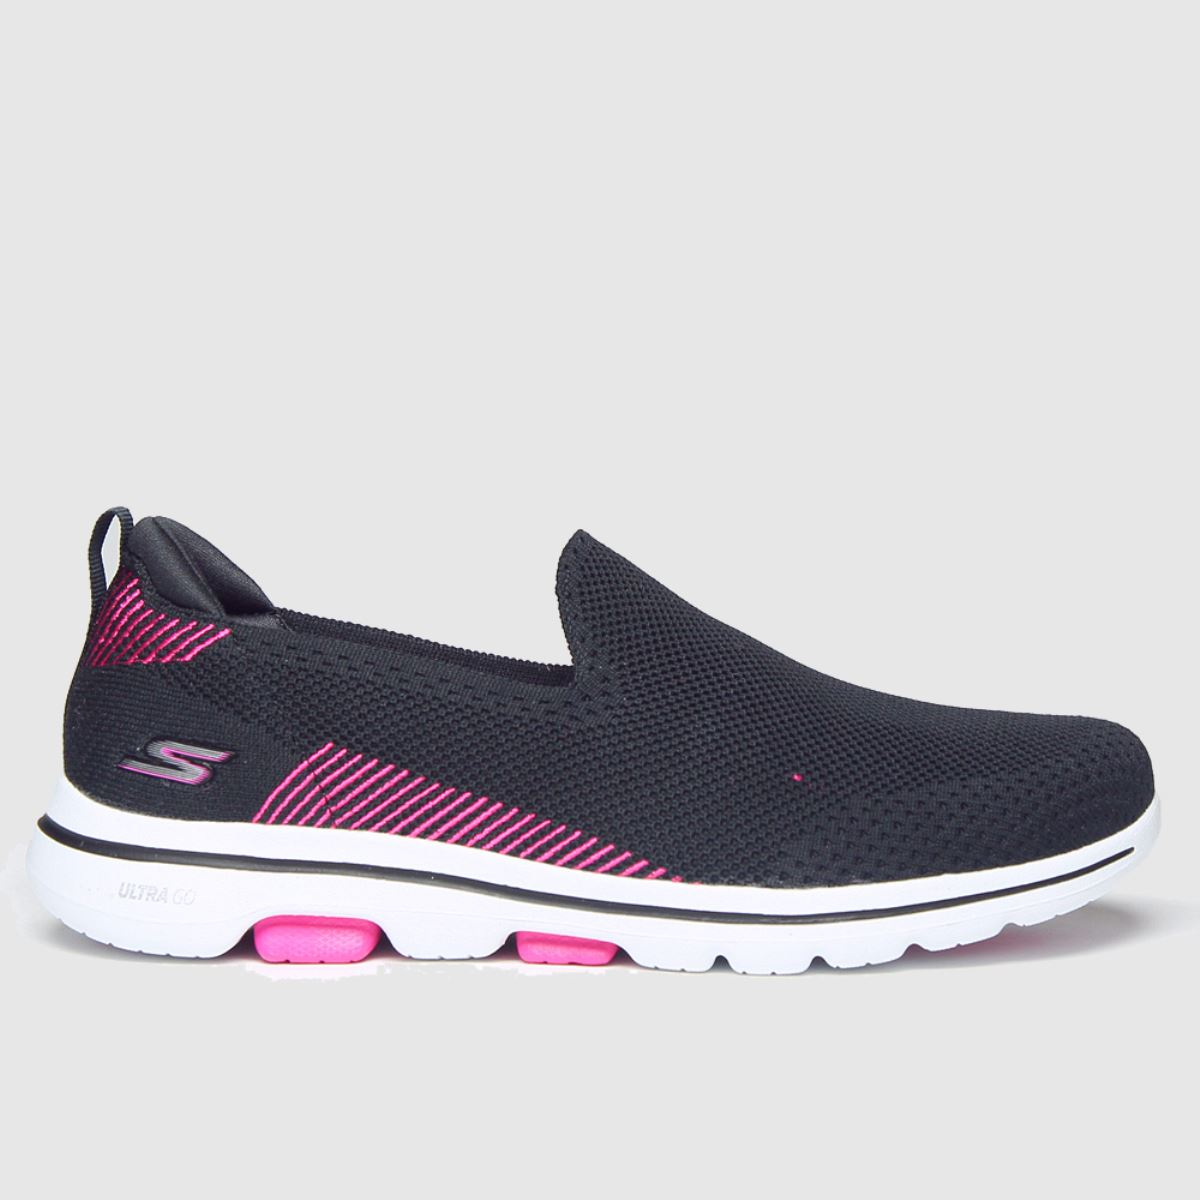 Skechers Black & Pink Go Walk 5 Prized Trainers